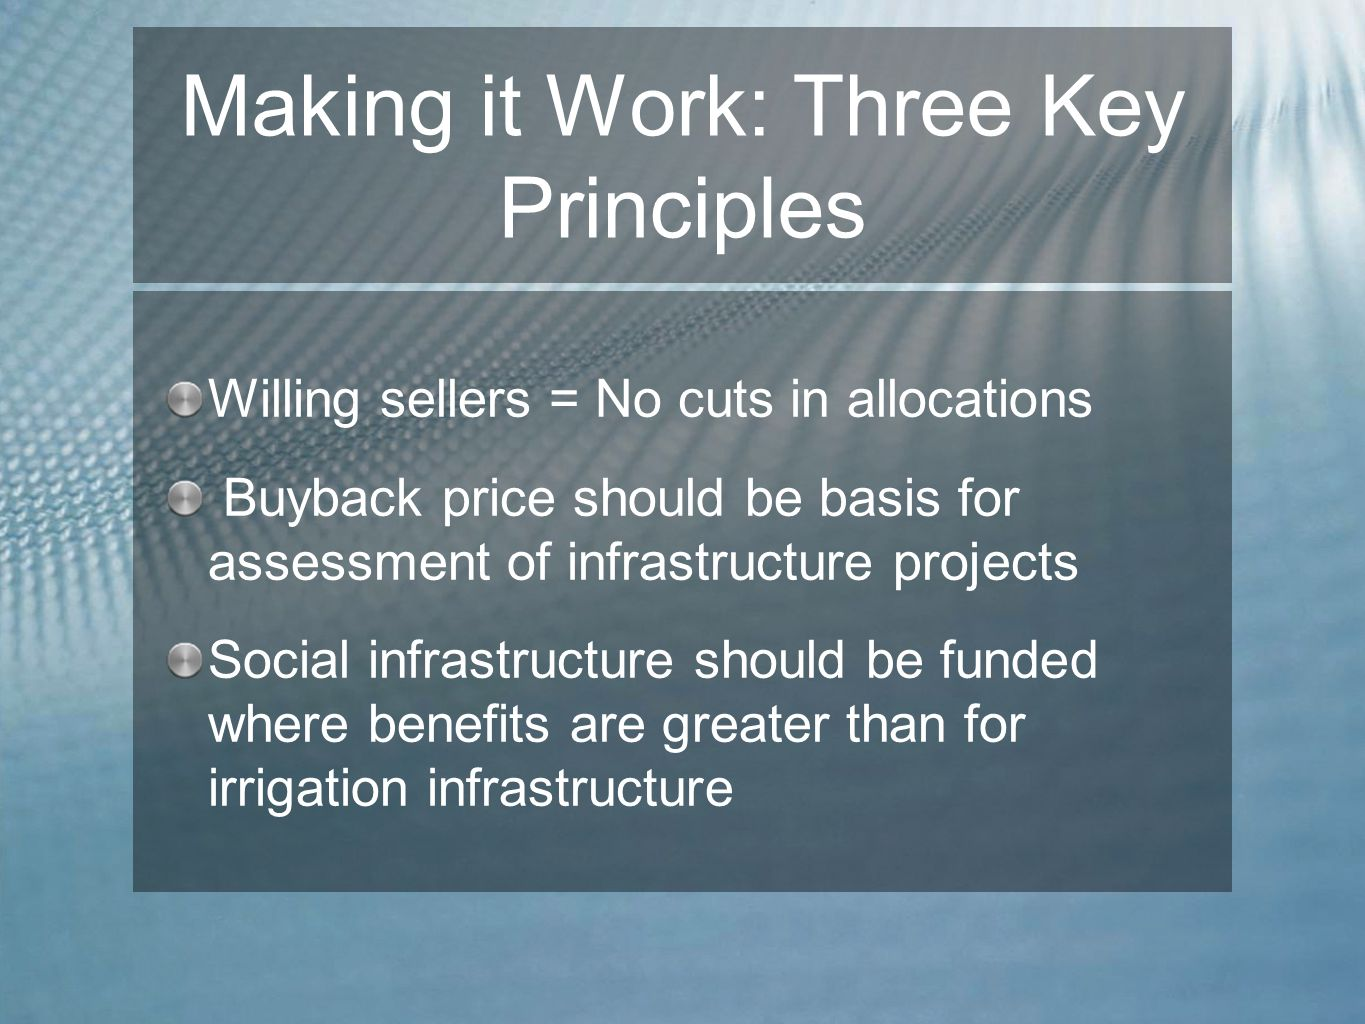 Making it Work: Three Key Principles Willing sellers = No cuts in allocations Buyback price should be basis for assessment of infrastructure projects Social infrastructure should be funded where benefits are greater than for irrigation infrastructure